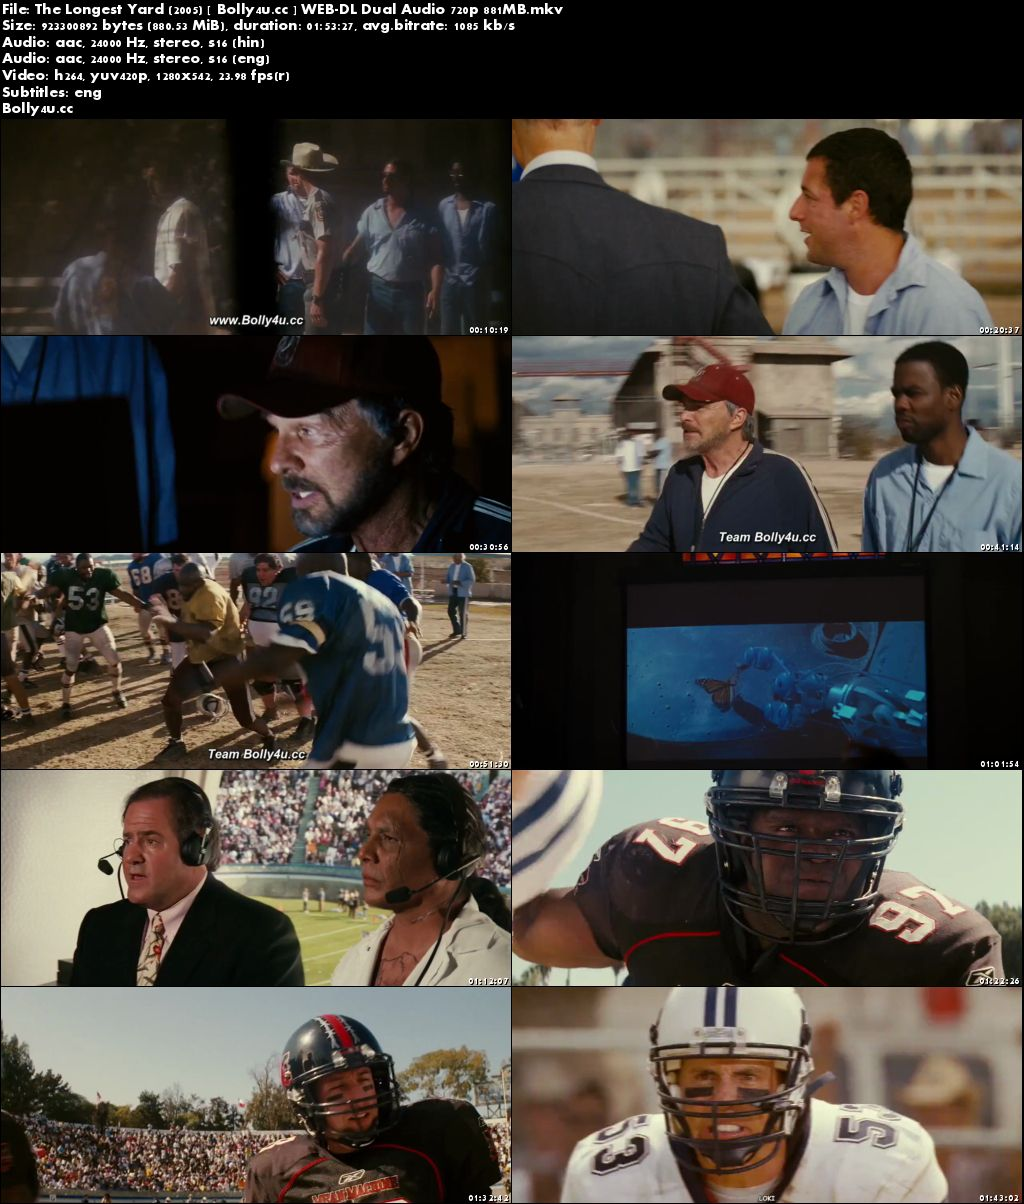 The Longest Yard 2005 WEB-DL 350MB Hindi Dual Audio 480p Download